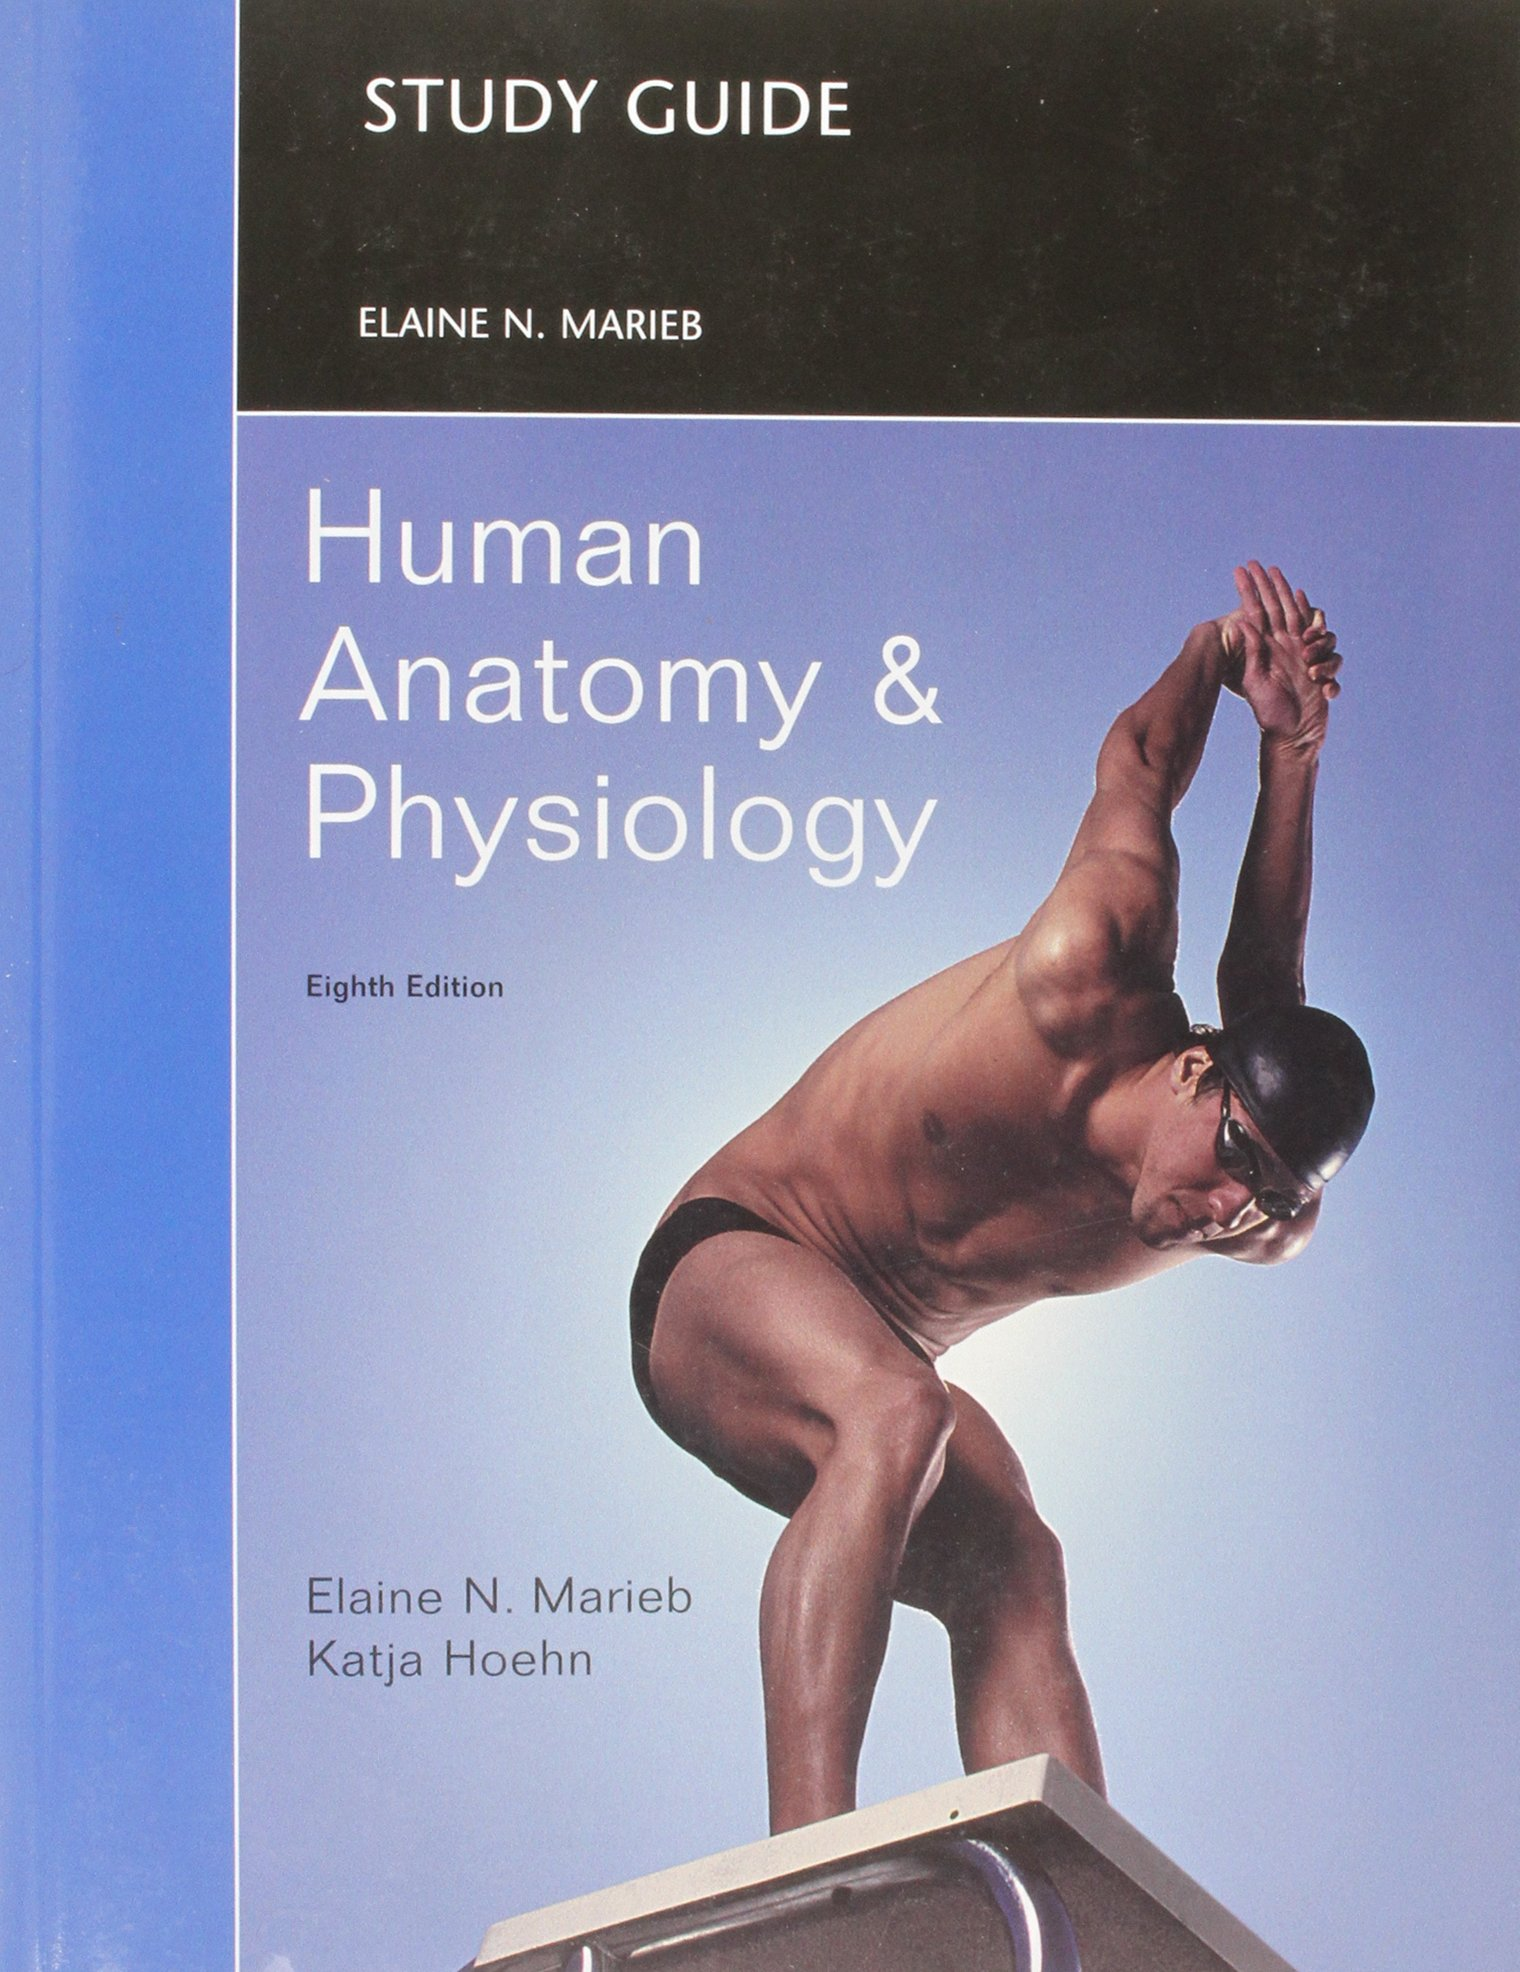 Study Guide for Human Anatomy and Physiology: Amazon.ca: Elaine N ...